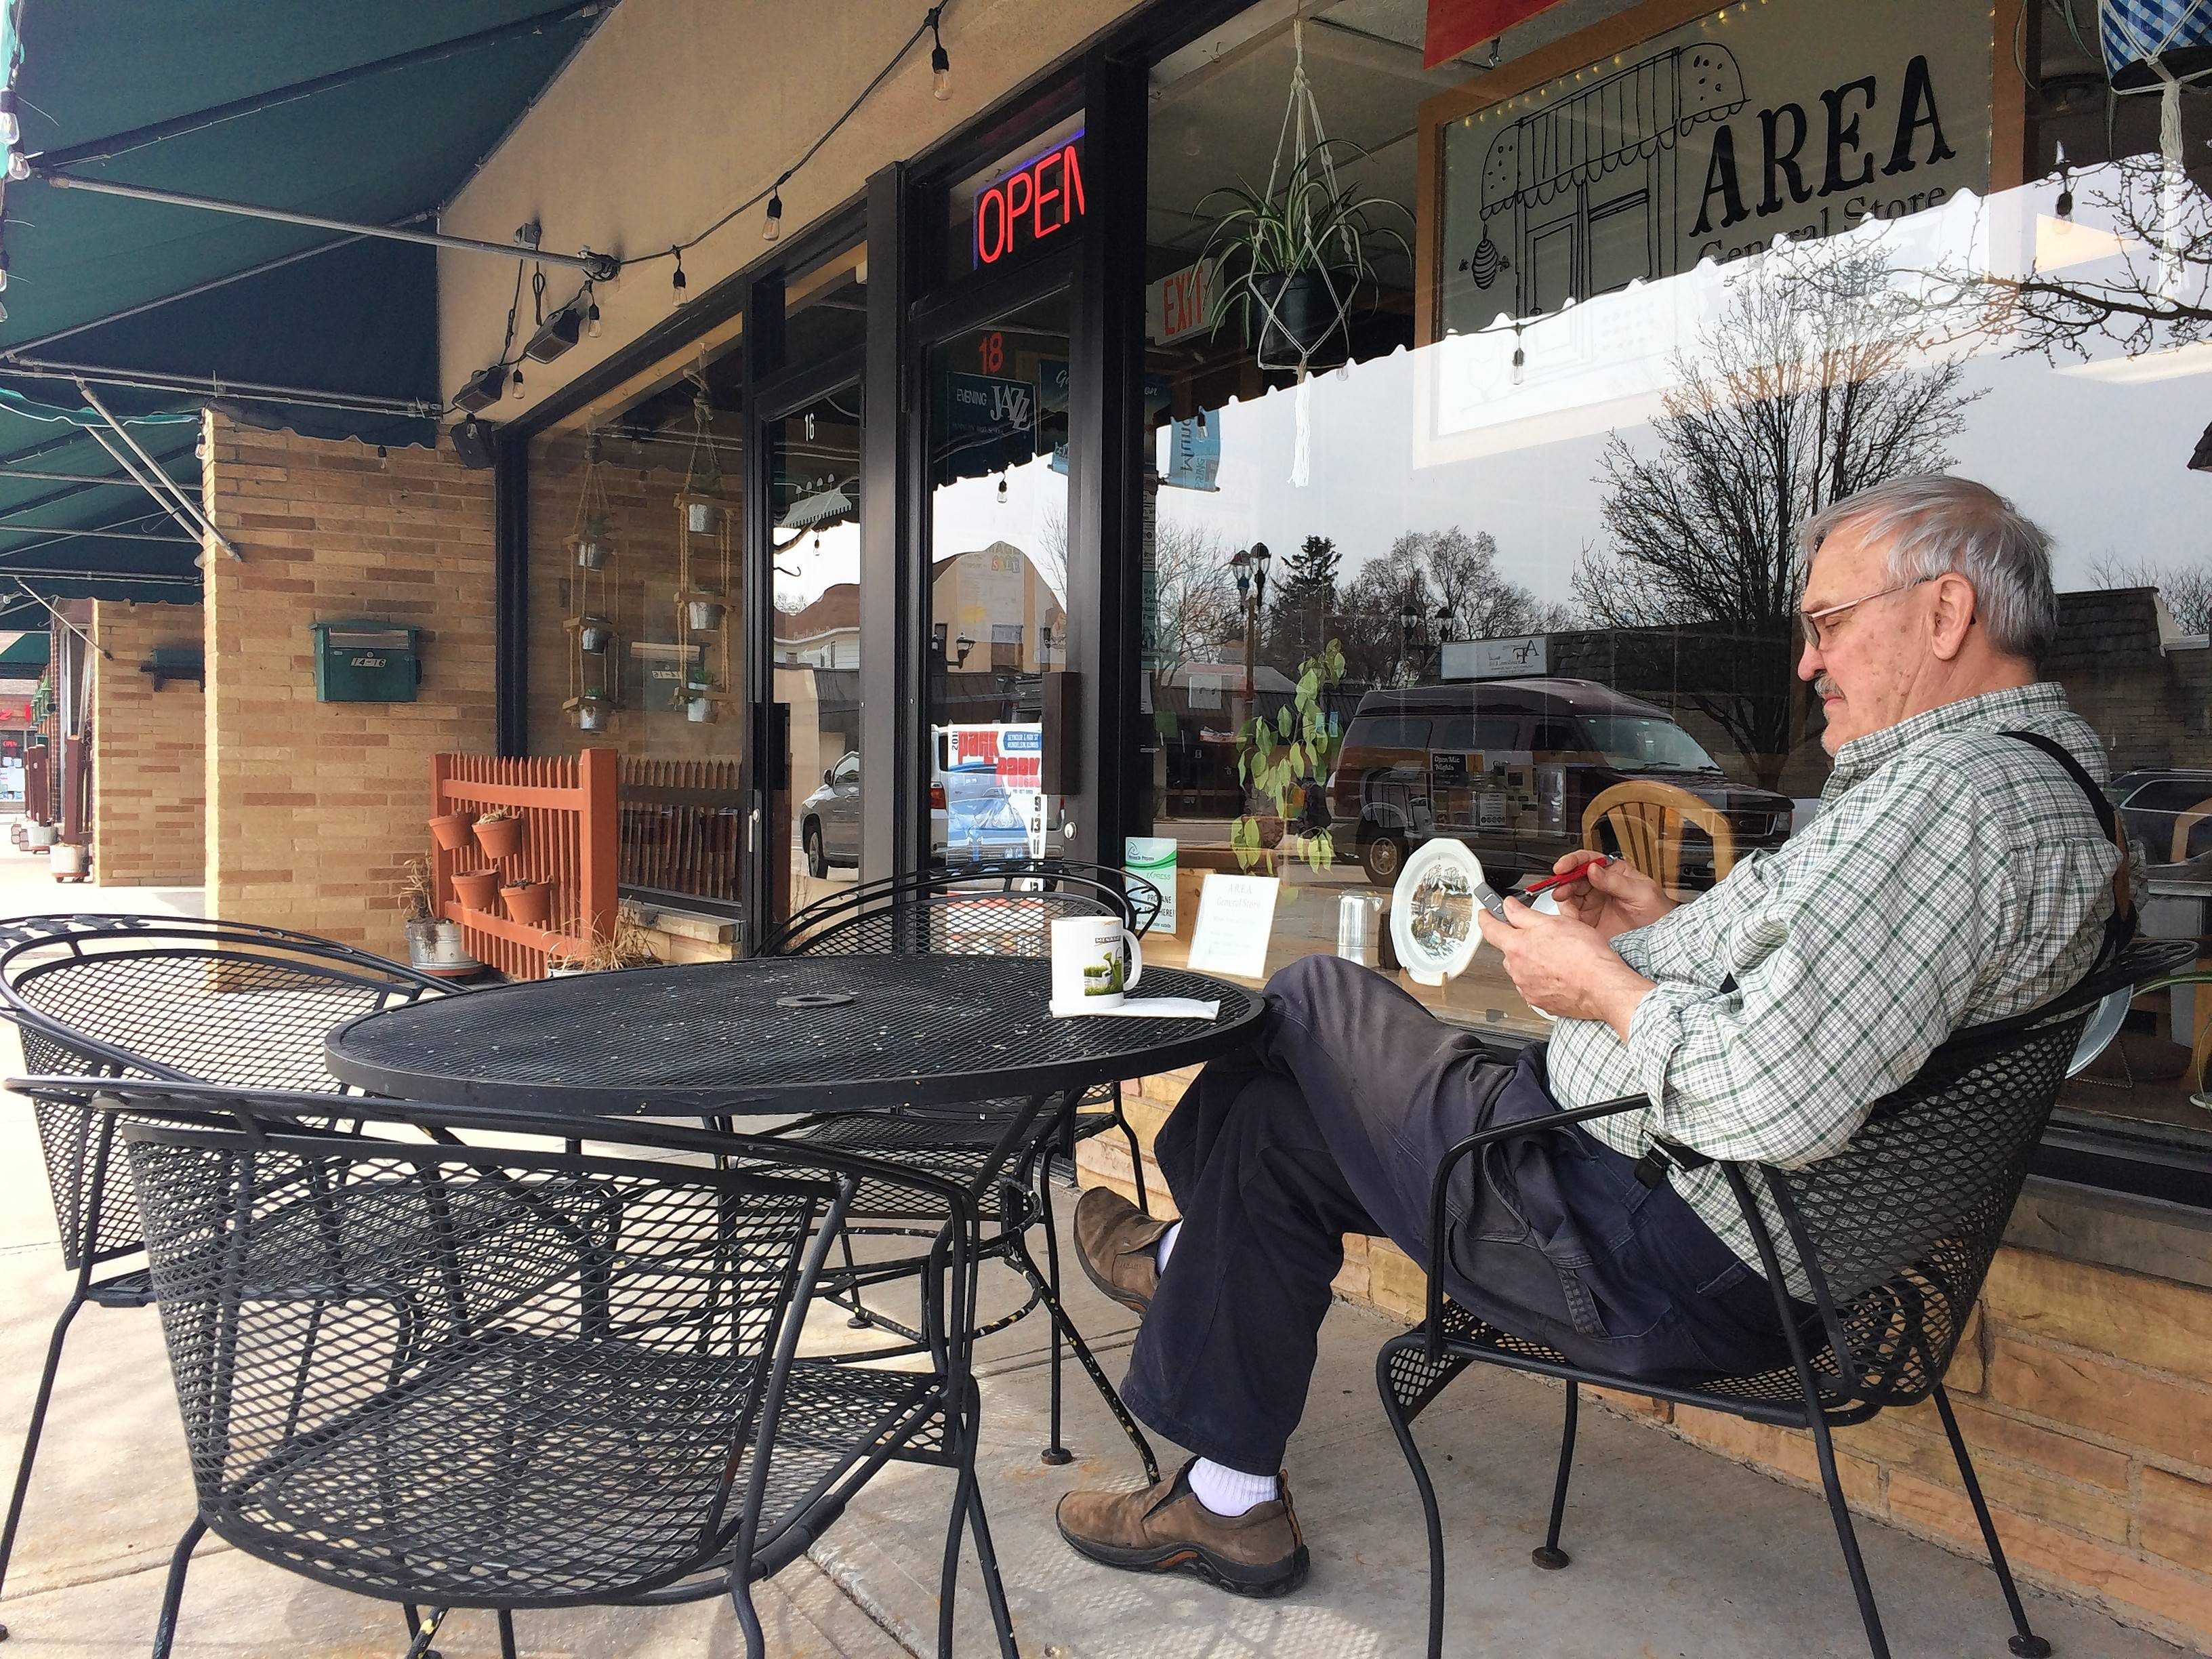 Mundelein sets rules for sidewalk dining areas